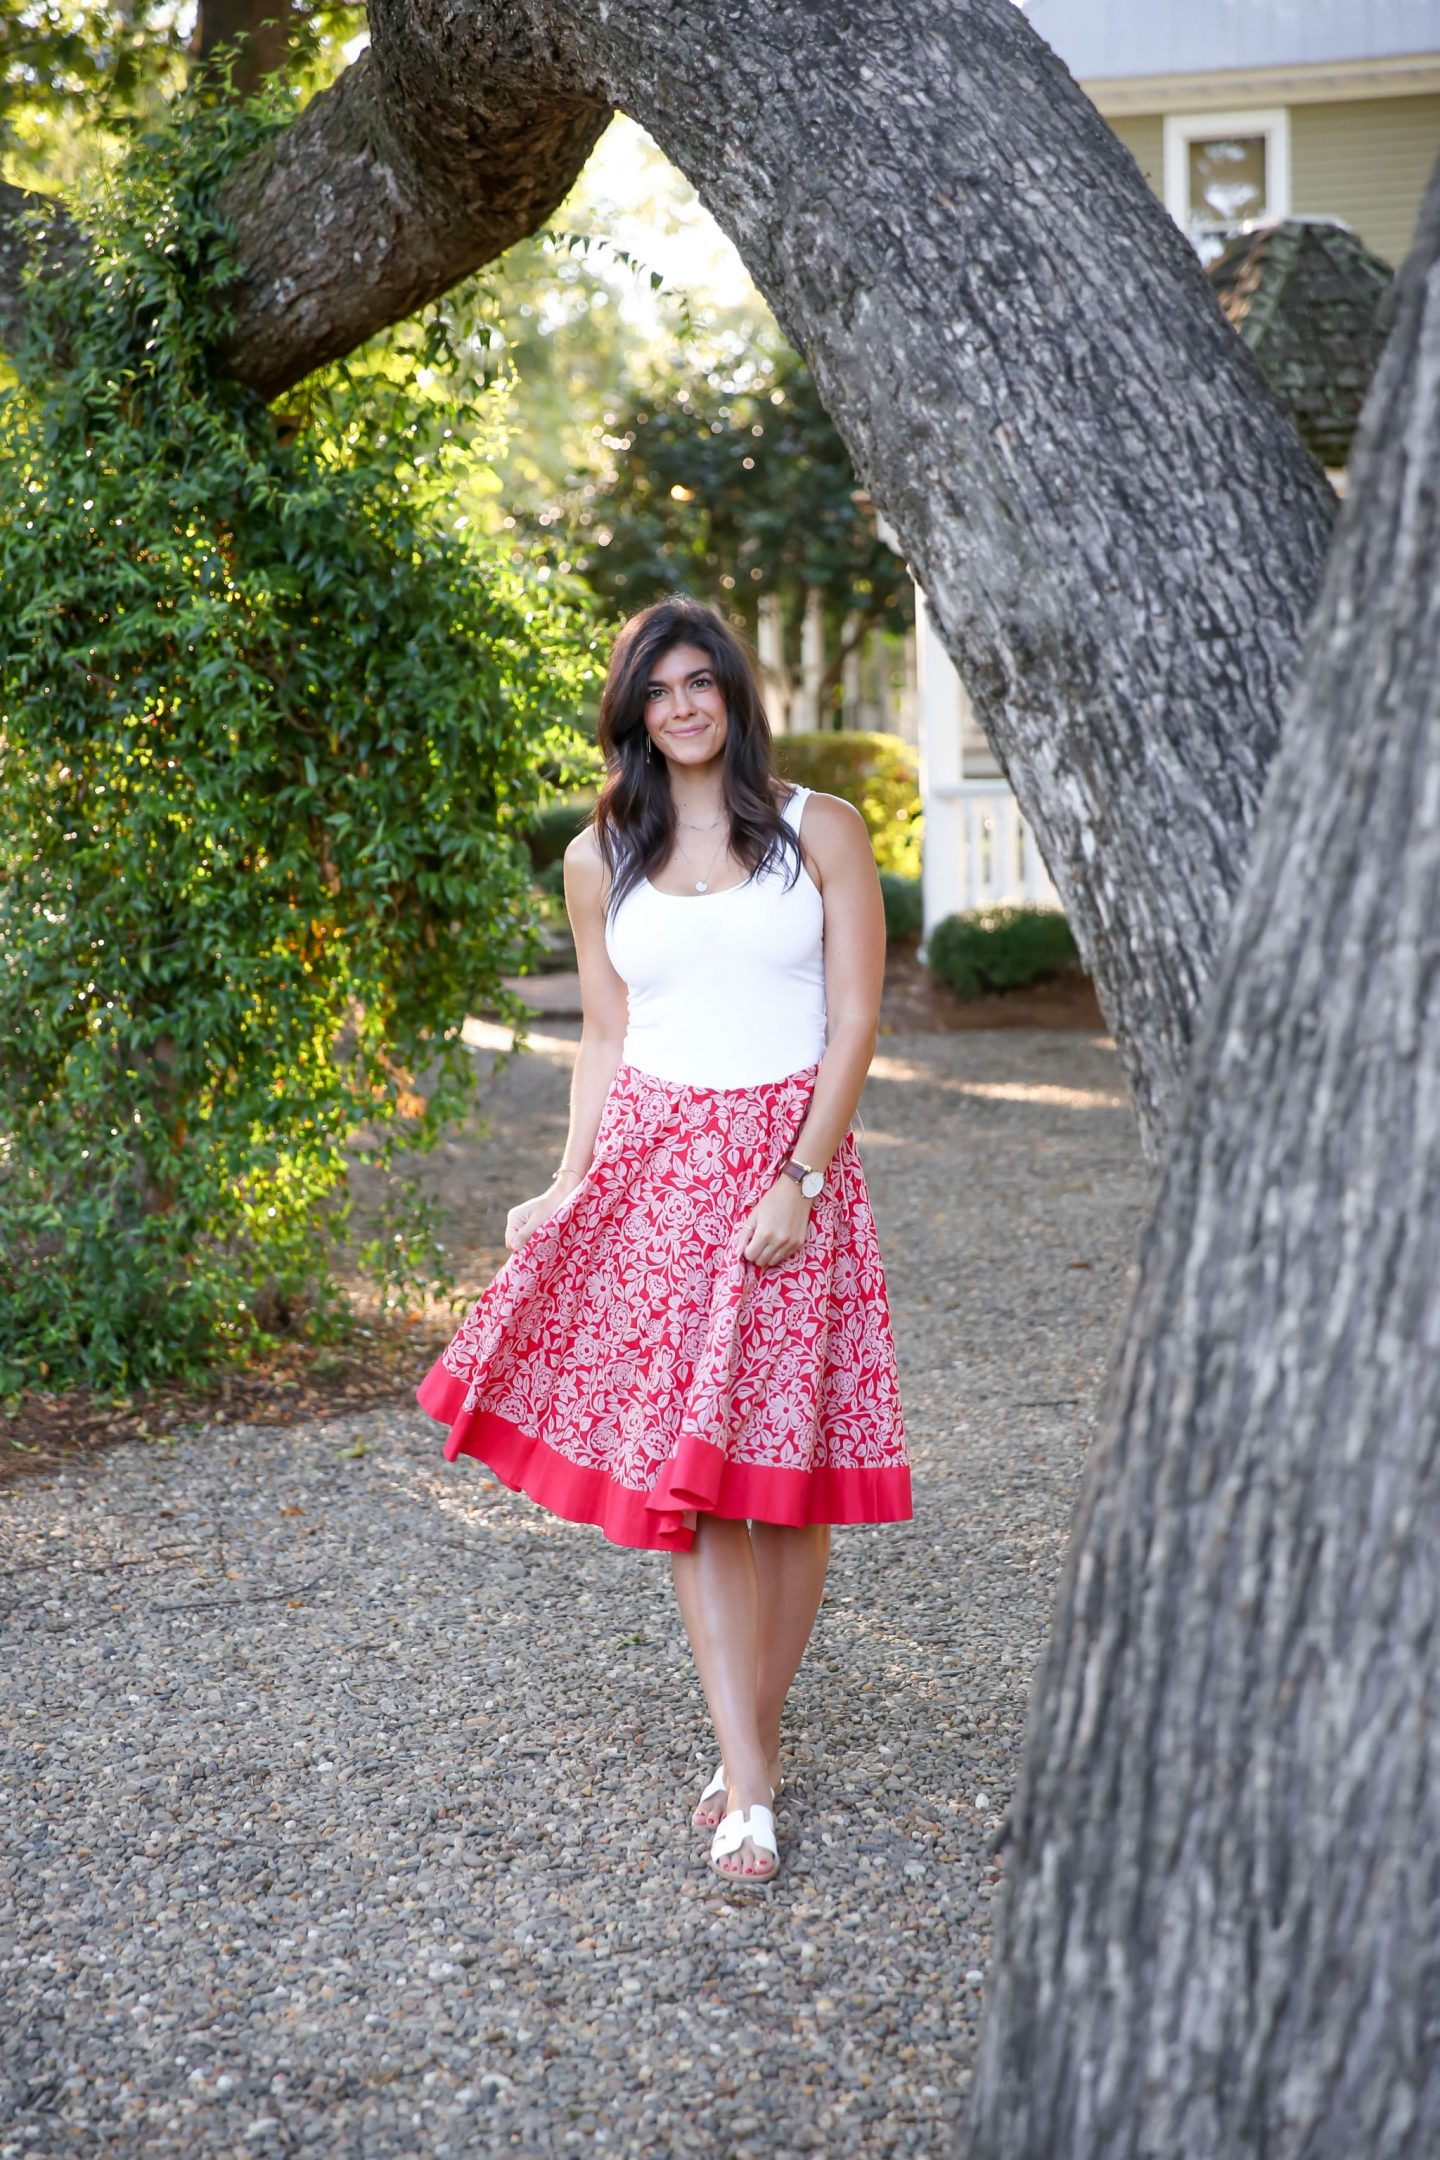 Red Floral Midi Skirt - Summer Style Inspiration - Lauren Schwaiger